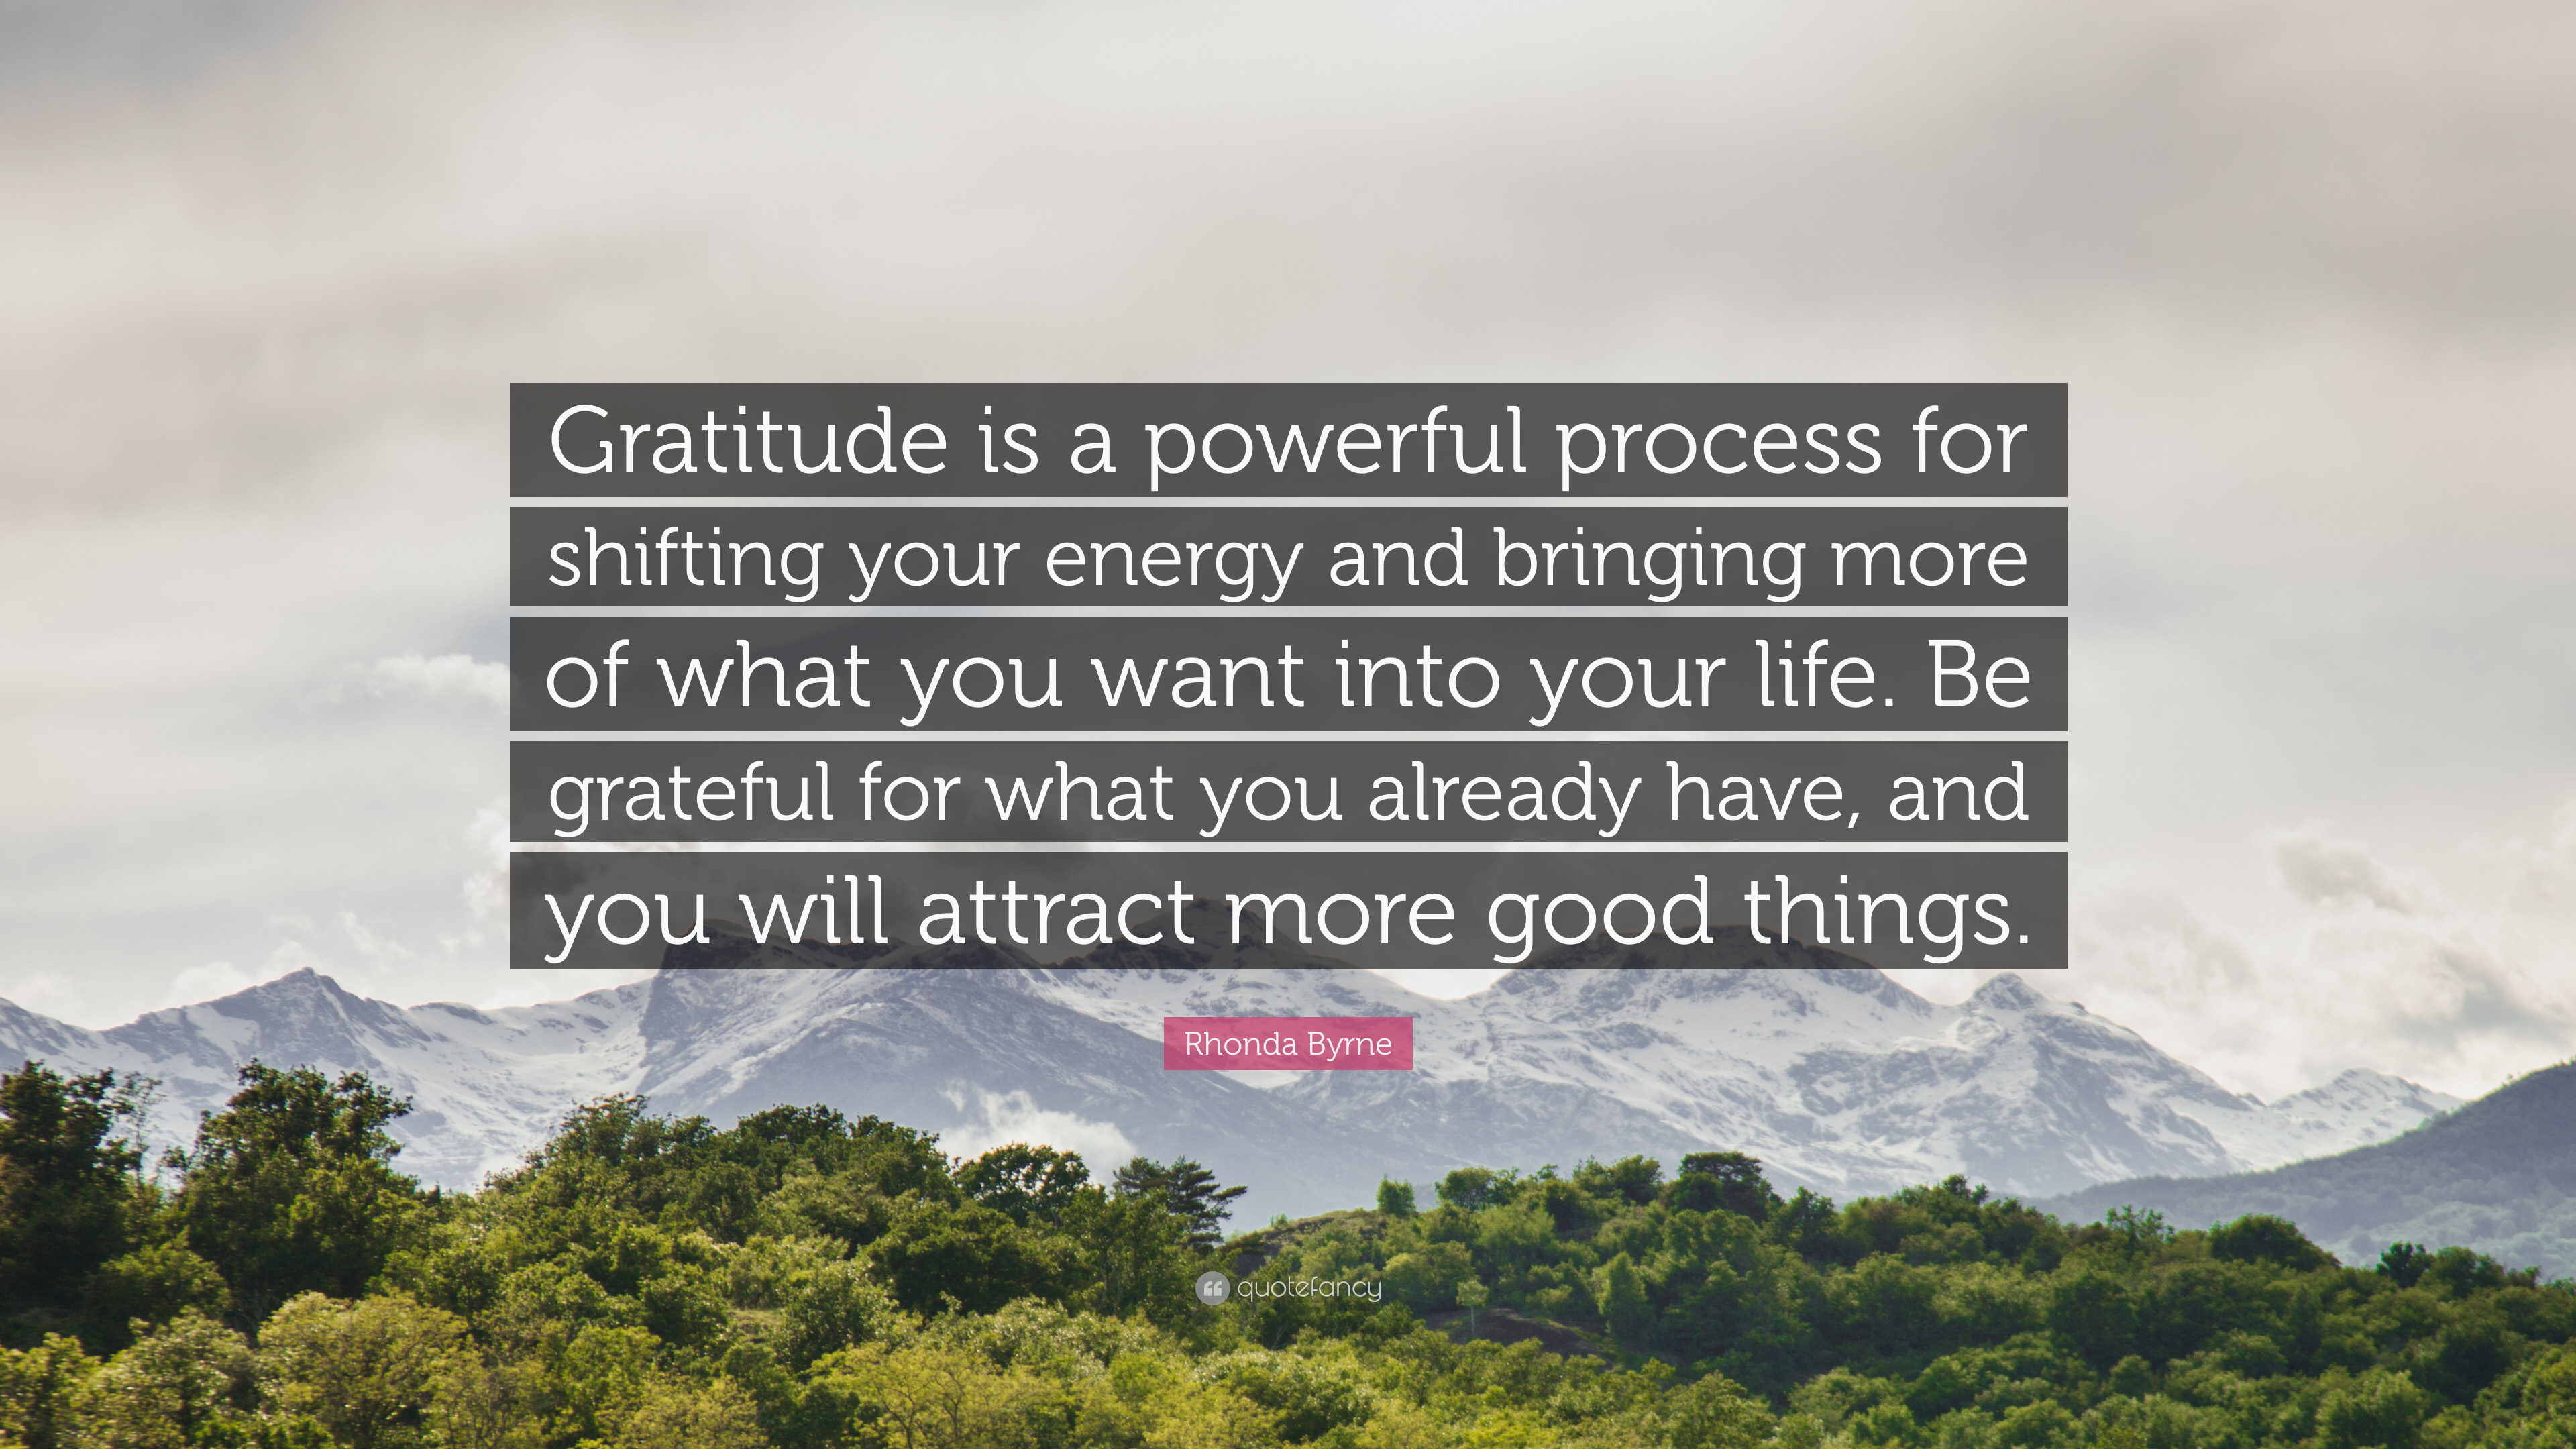 Marvelous Rhonda Byrne Quote: U201cGratitude Is A Powerful Process For Shifting Your  Energy And Bringing